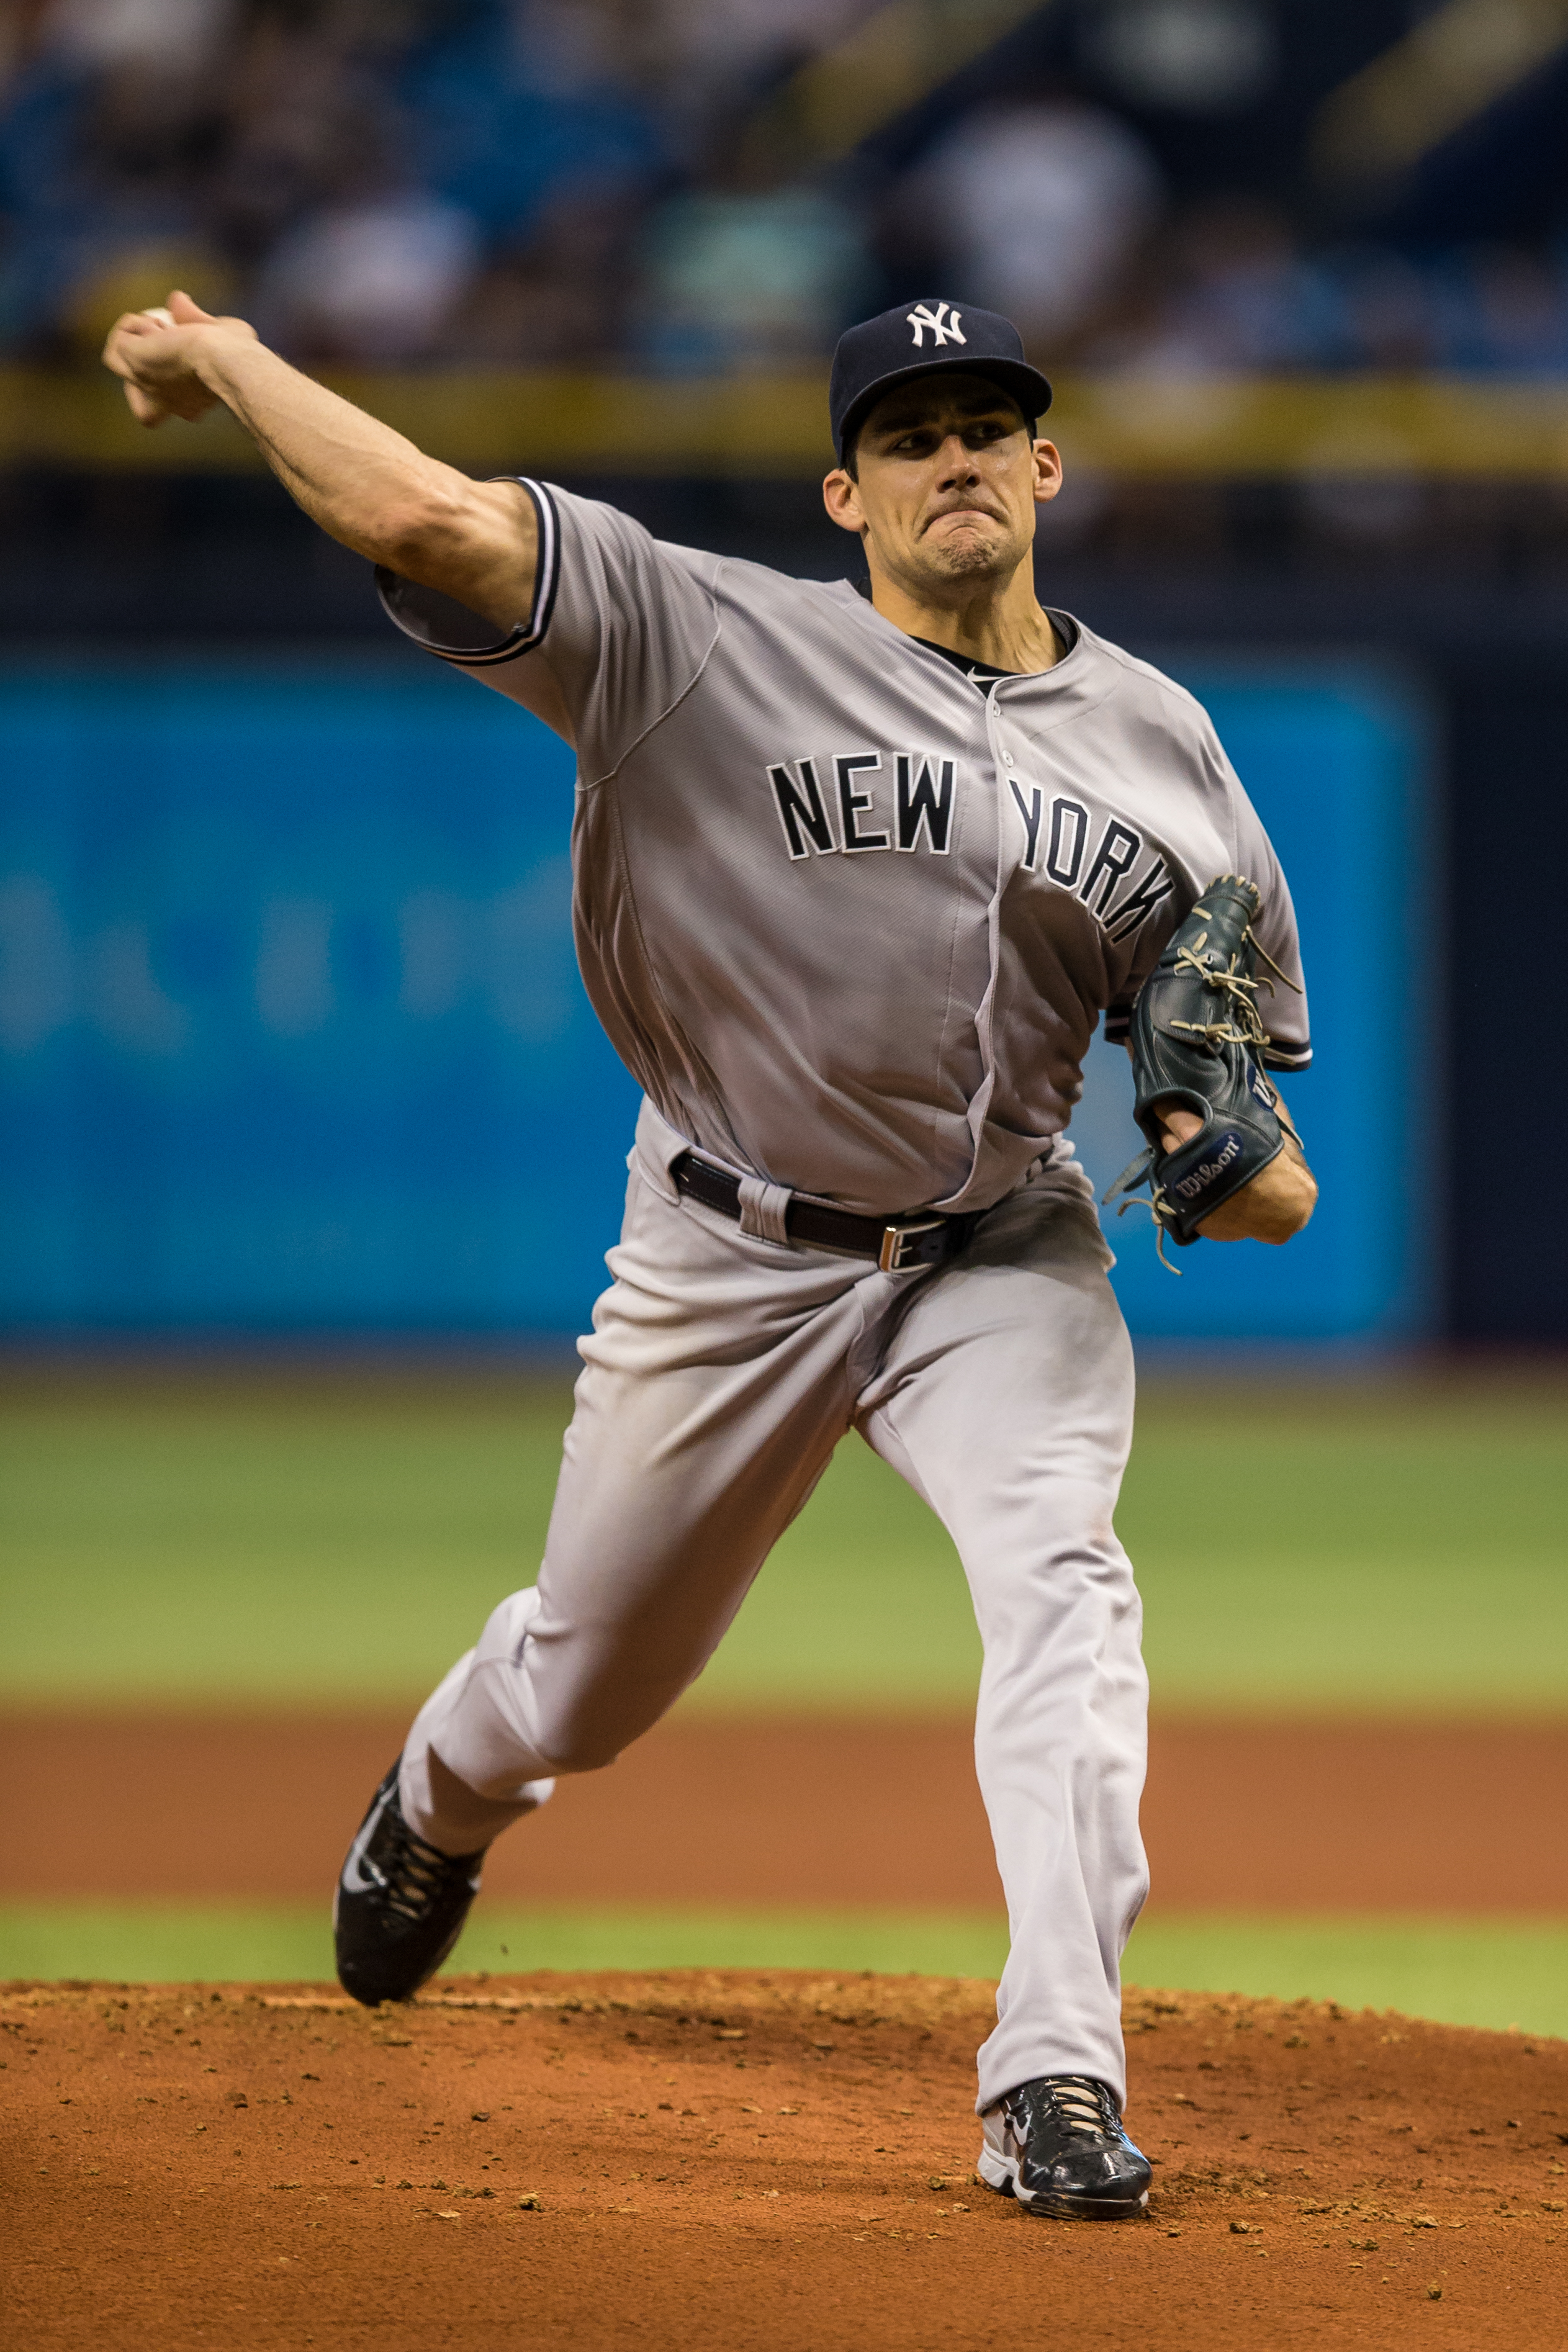 Eovaldi, shown pitching for the Yankees, finally returned to the mound./TRAVIS PENDERGRASS